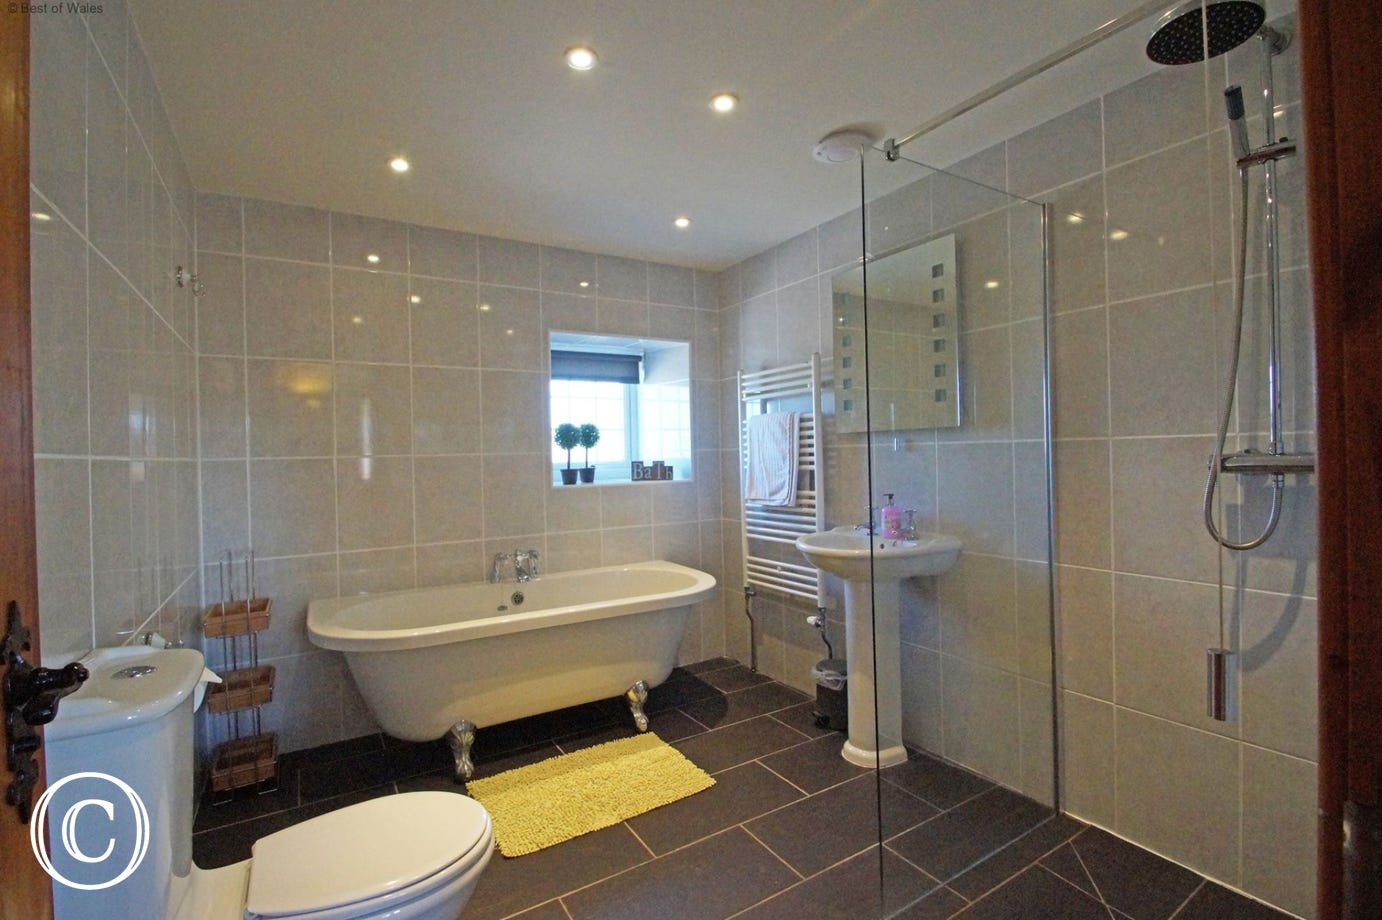 Ground floor bathroom with freestanding bath & wet-room style shower